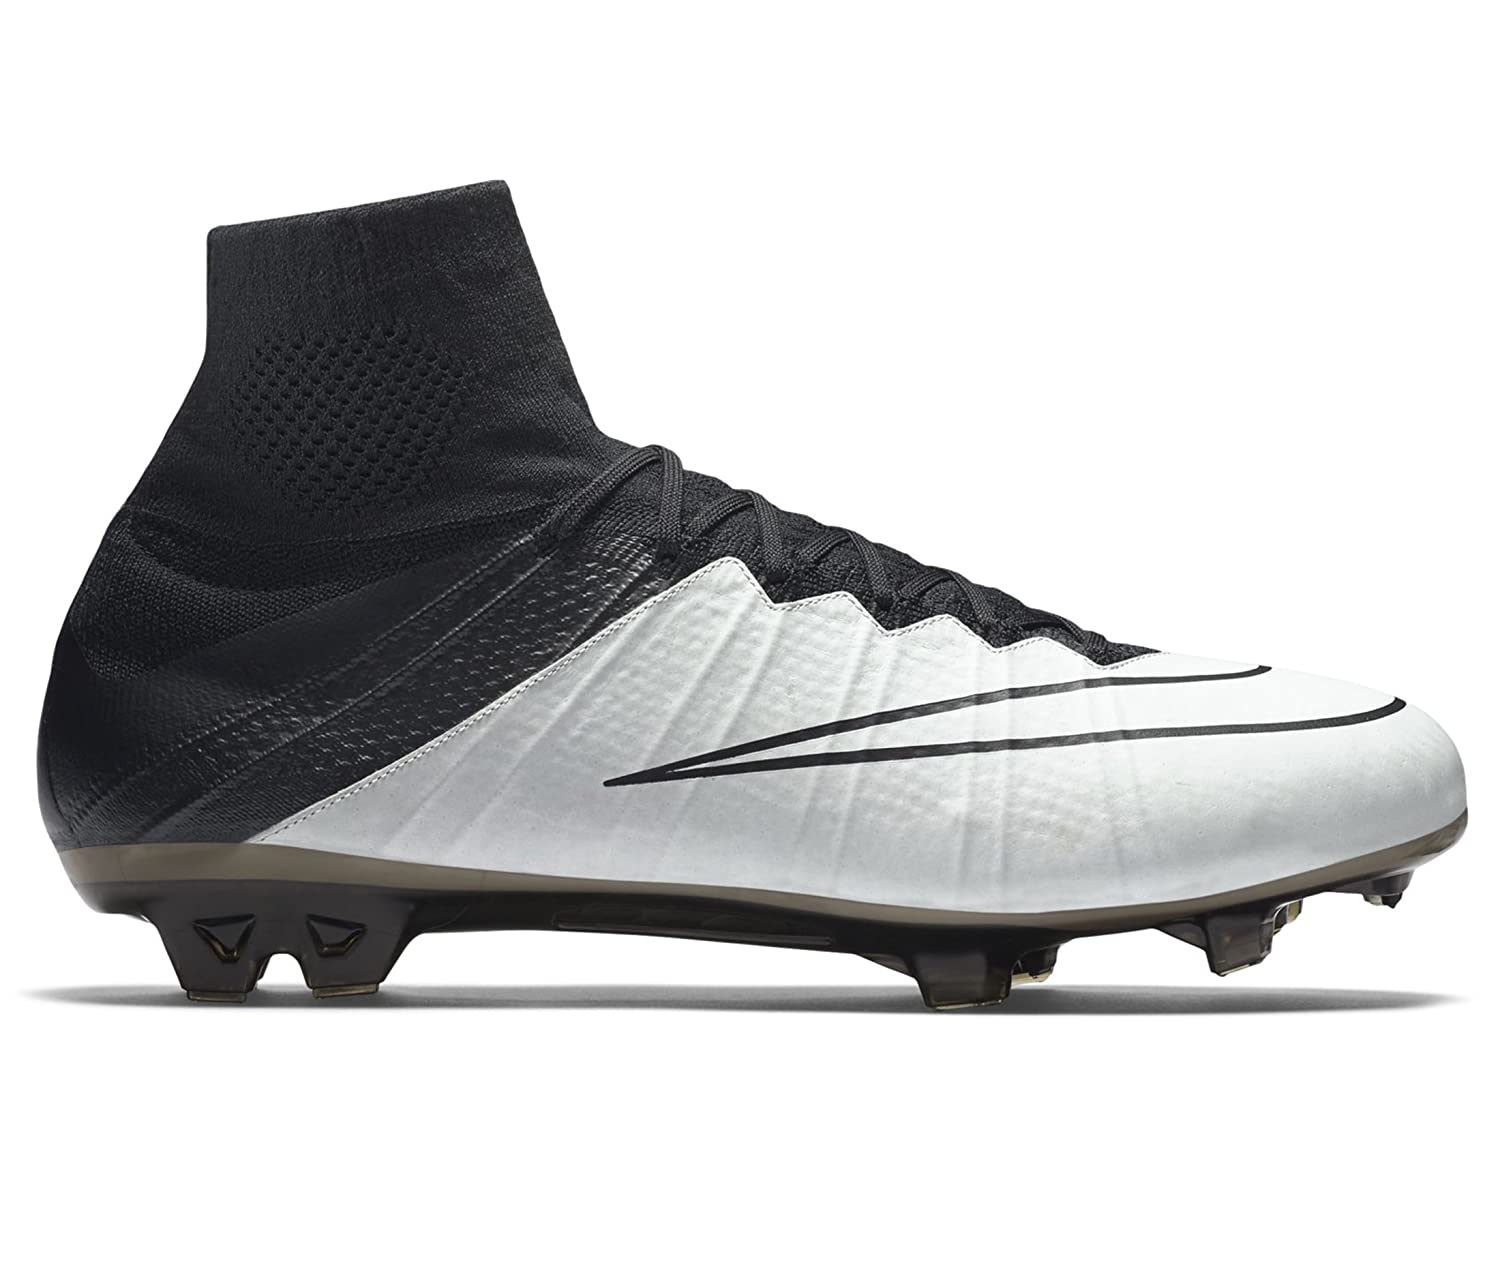 138e9dde69c6c NIKE Men's Mercurial Superfly Lthr FG Football Boots, Black (Light ...